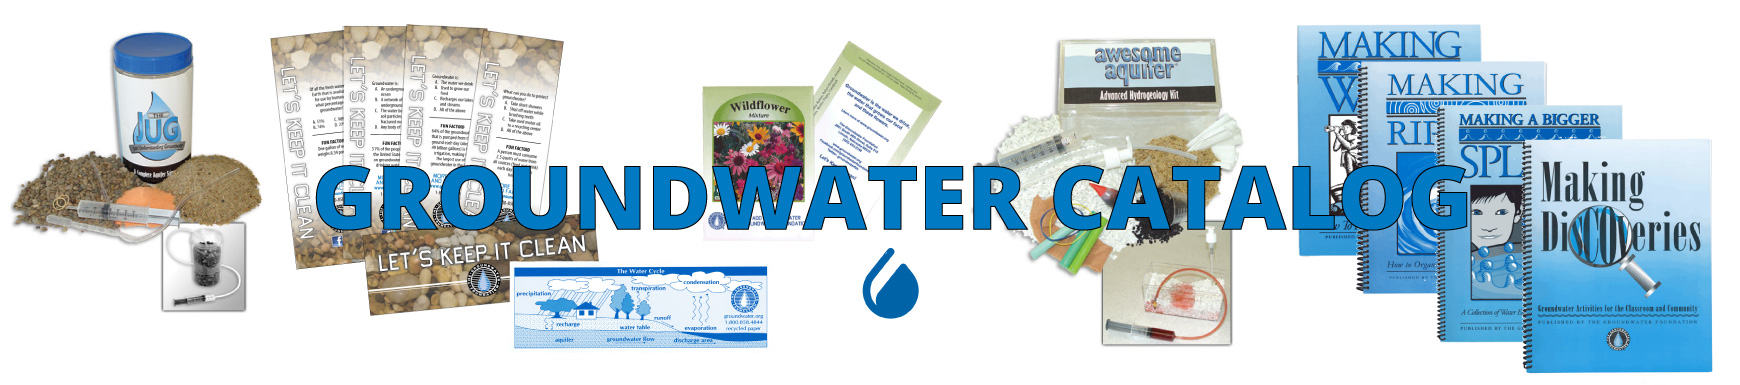 Groundwater Catalog